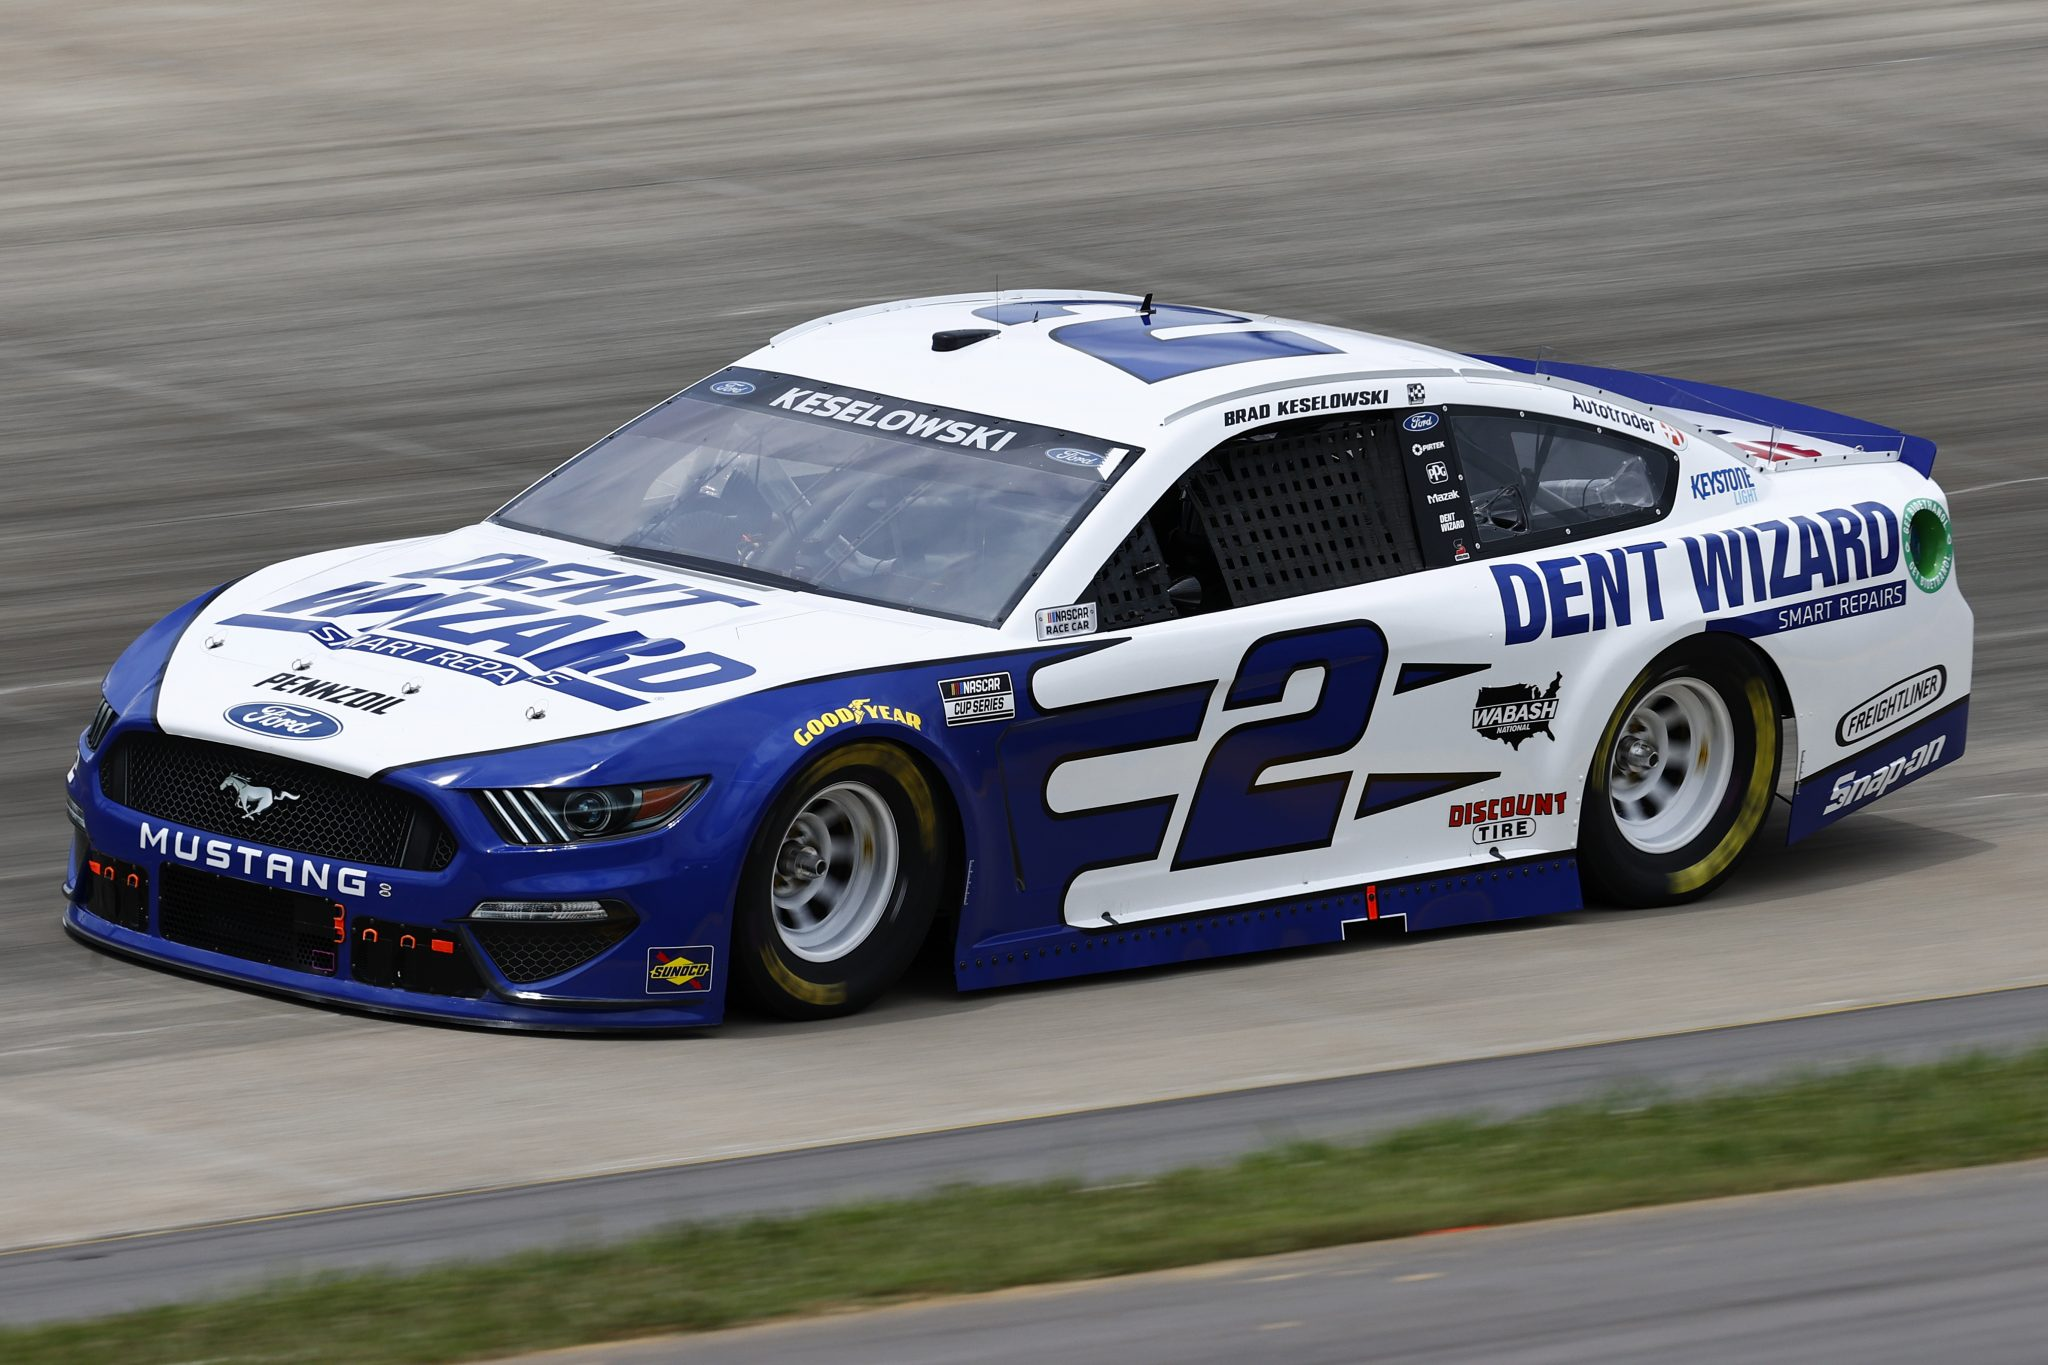 LEBANON, TENNESSEE - JUNE 19:Brad Keselowski, driver of the #2 Dent Wizard Ford, drives during practice for the NASCAR Cup Series Ally 400 at Nashville Superspeedway on June 19, 2021 in Lebanon, Tennessee. (Photo by Jared C. Tilton/Getty Images)   Getty Images